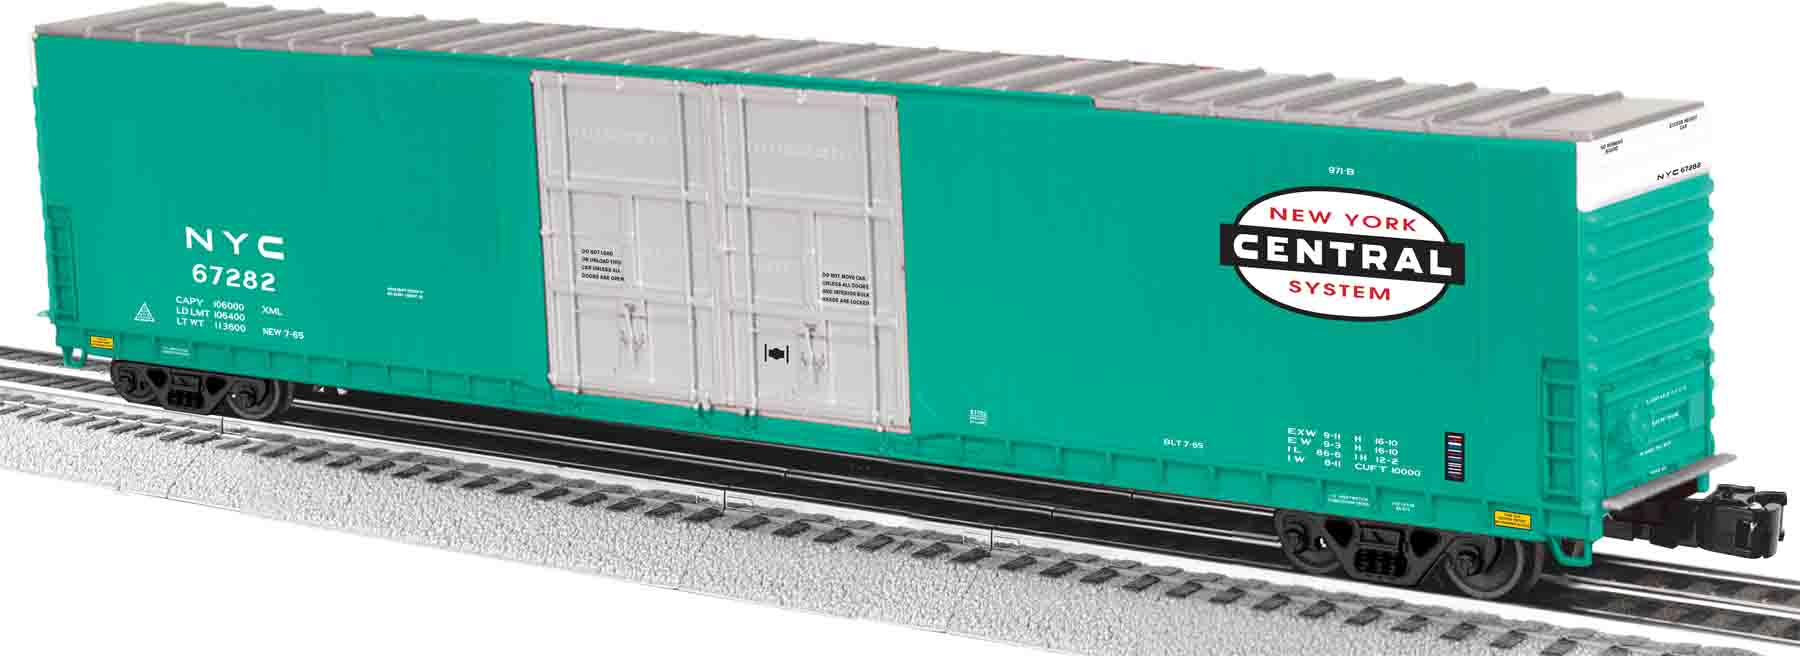 Https 2014 09 12 Freight Car Friday Pfe R 70 Interior Ford Truck Wiring Diagrams Besides Lionel Switch Track 6 81712 2089